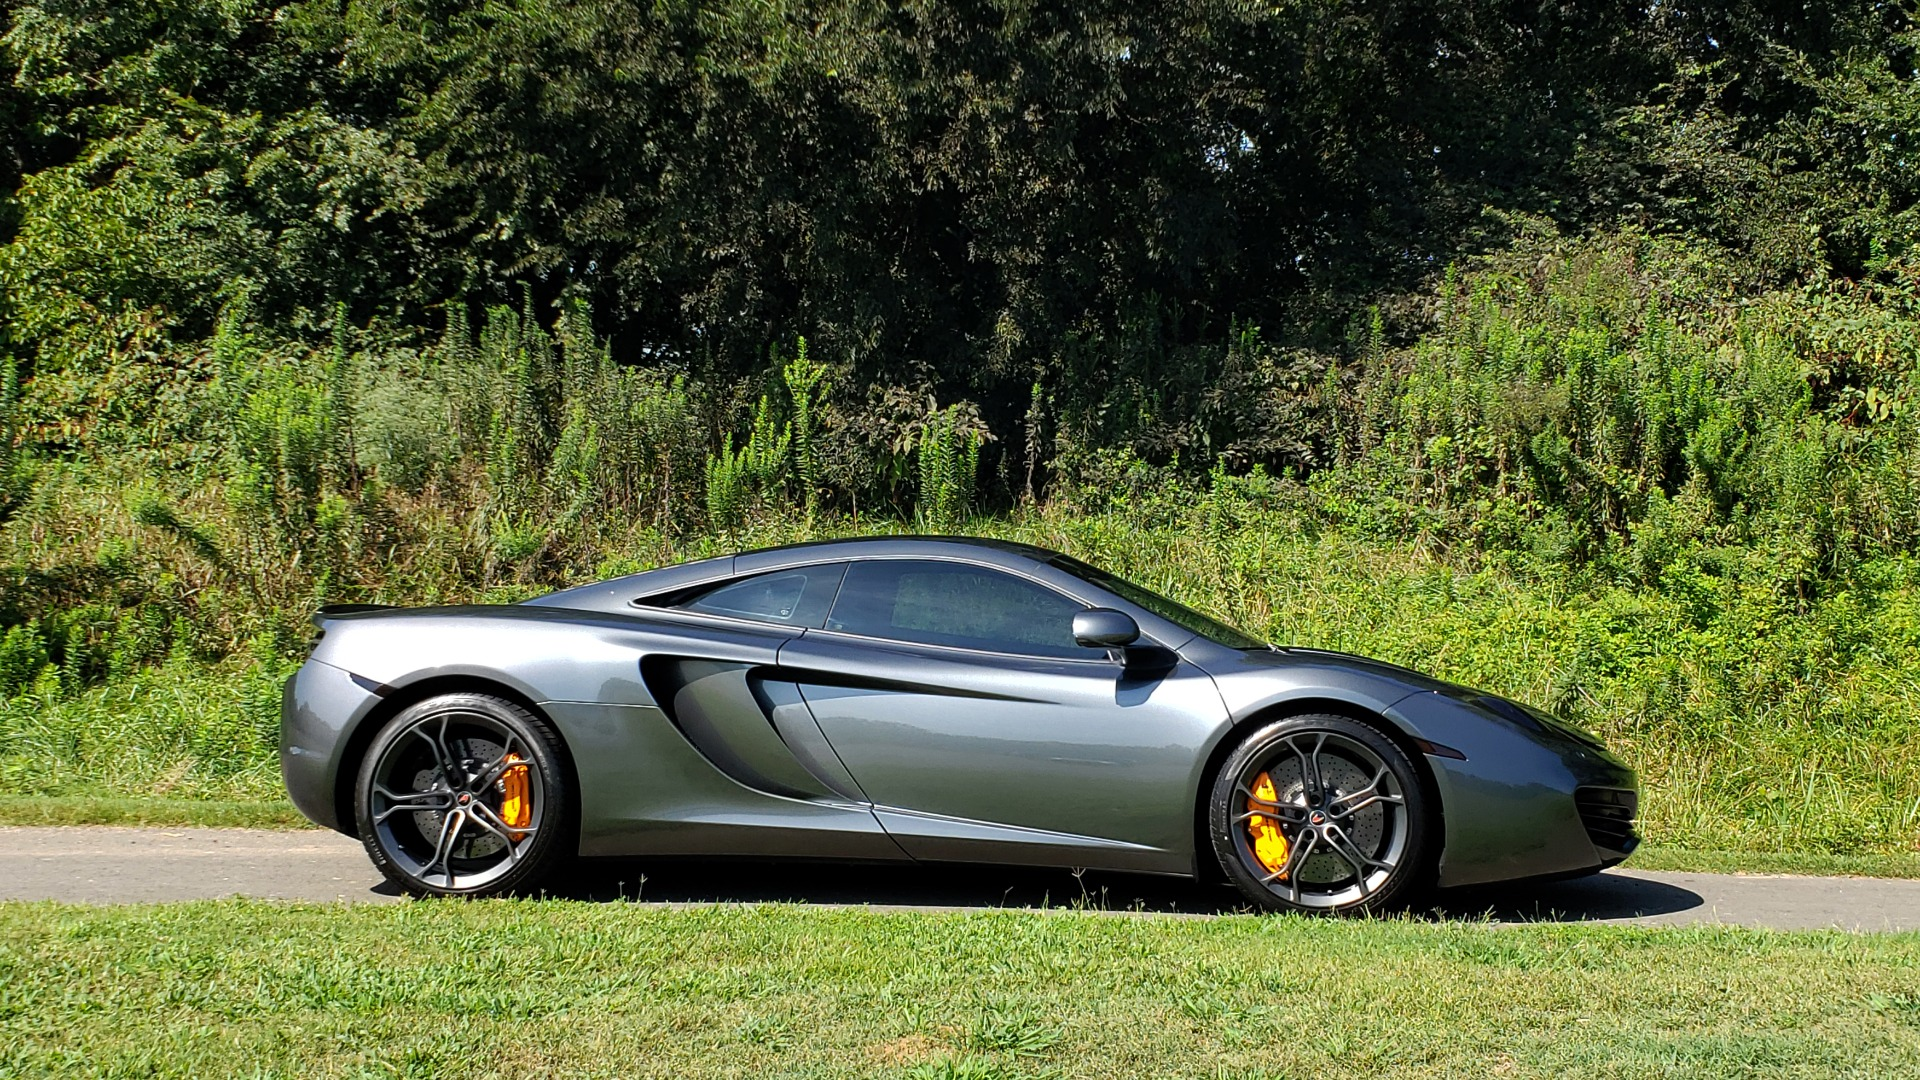 Used 2012 McLaren MP4-12C COUPE / 3.8 L V8 592HP / AUTO / NAV / CCB / LOW MILES for sale $97,999 at Formula Imports in Charlotte NC 28227 18